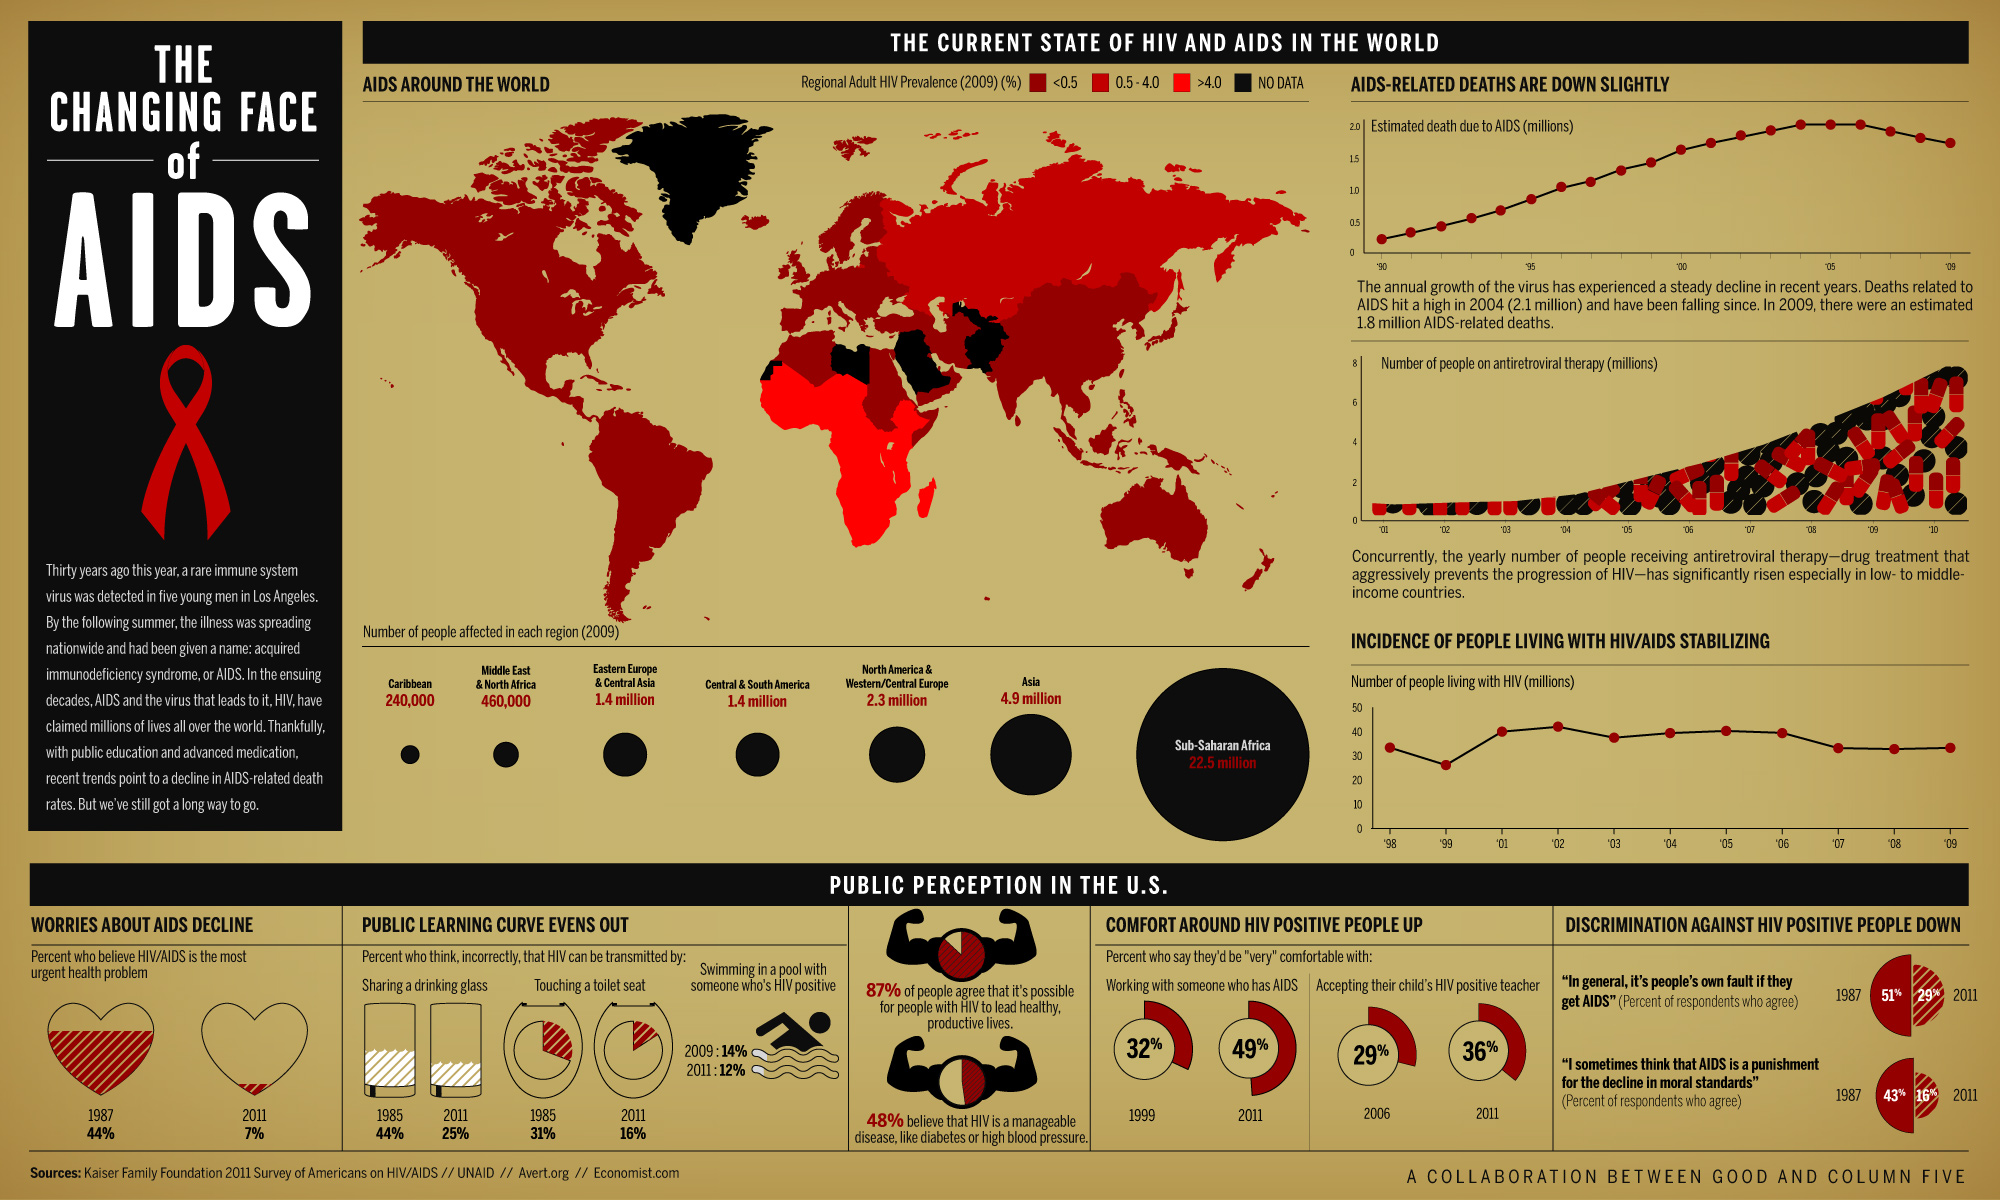 The Changing Faces Of AIDS, An Infographic